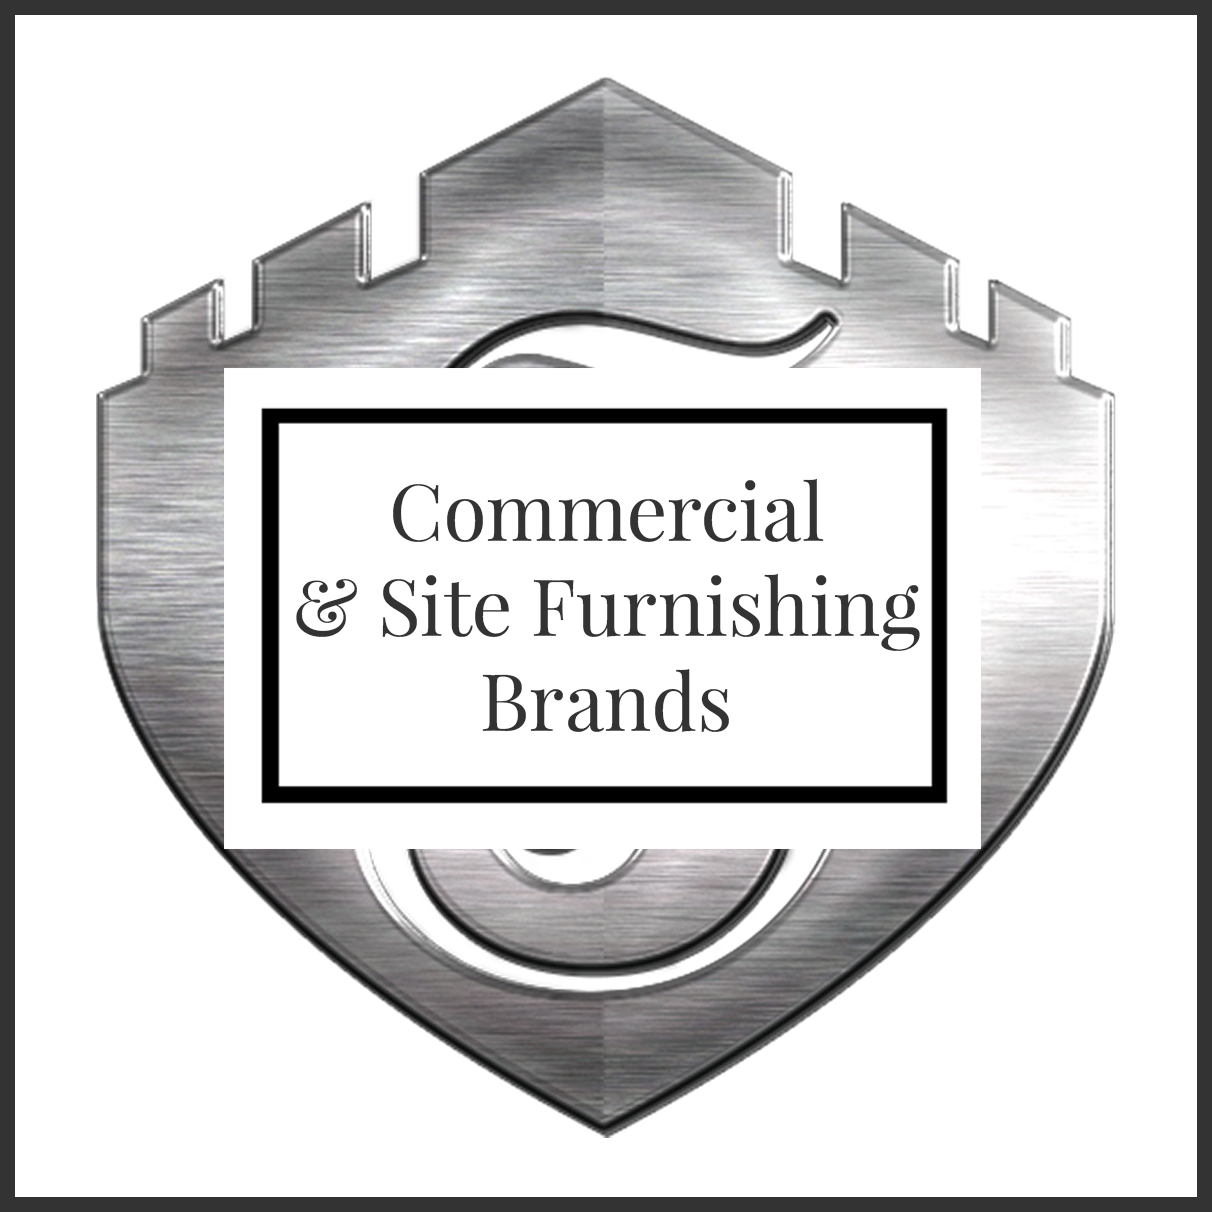 Commercial & Site Furnishing Brands